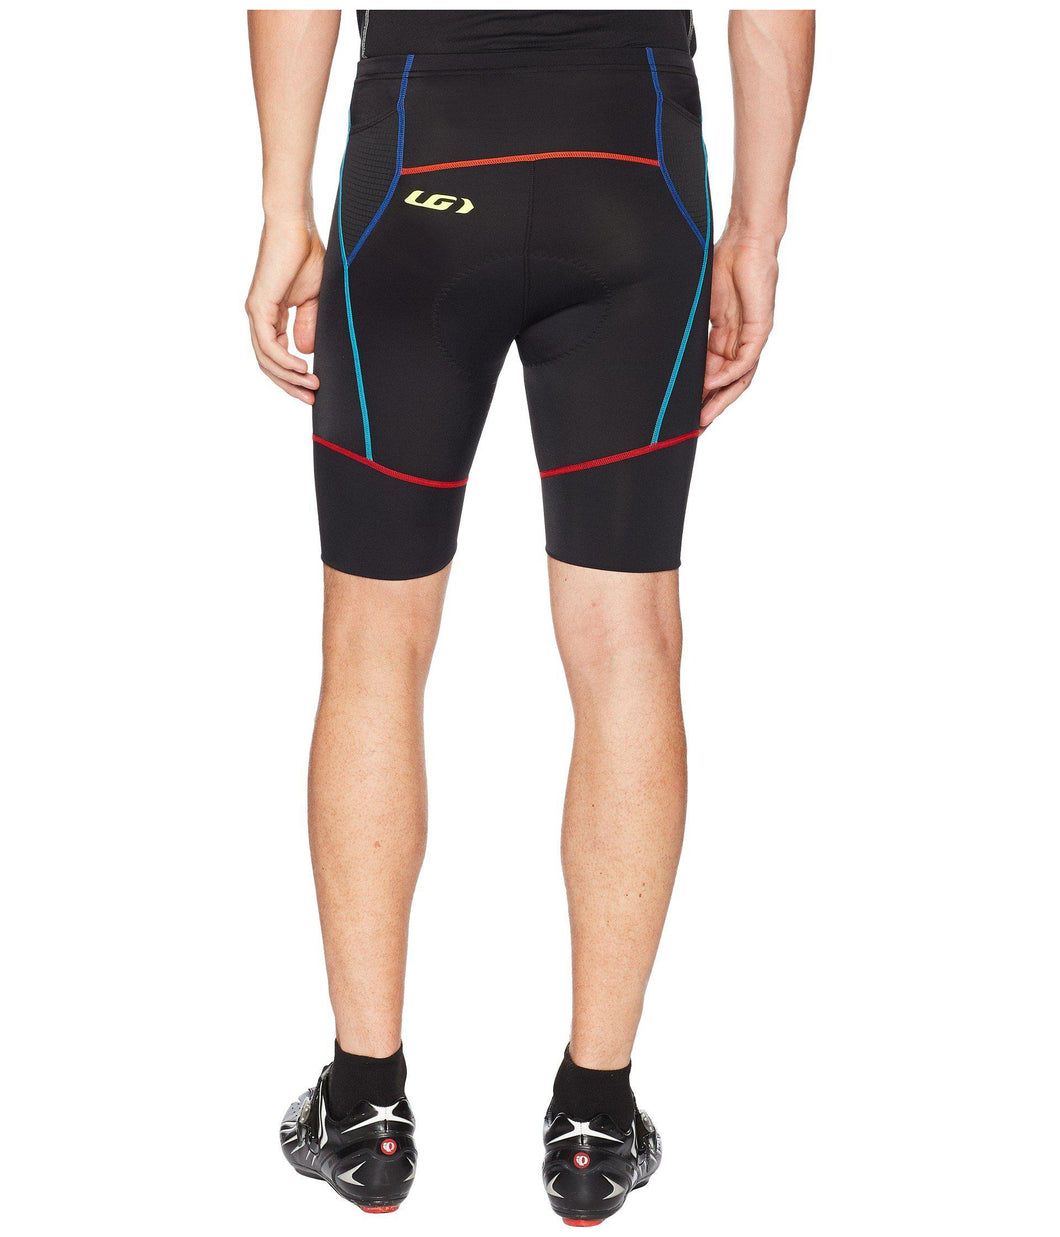 Garneau Men's Small Tri Comp Shorts